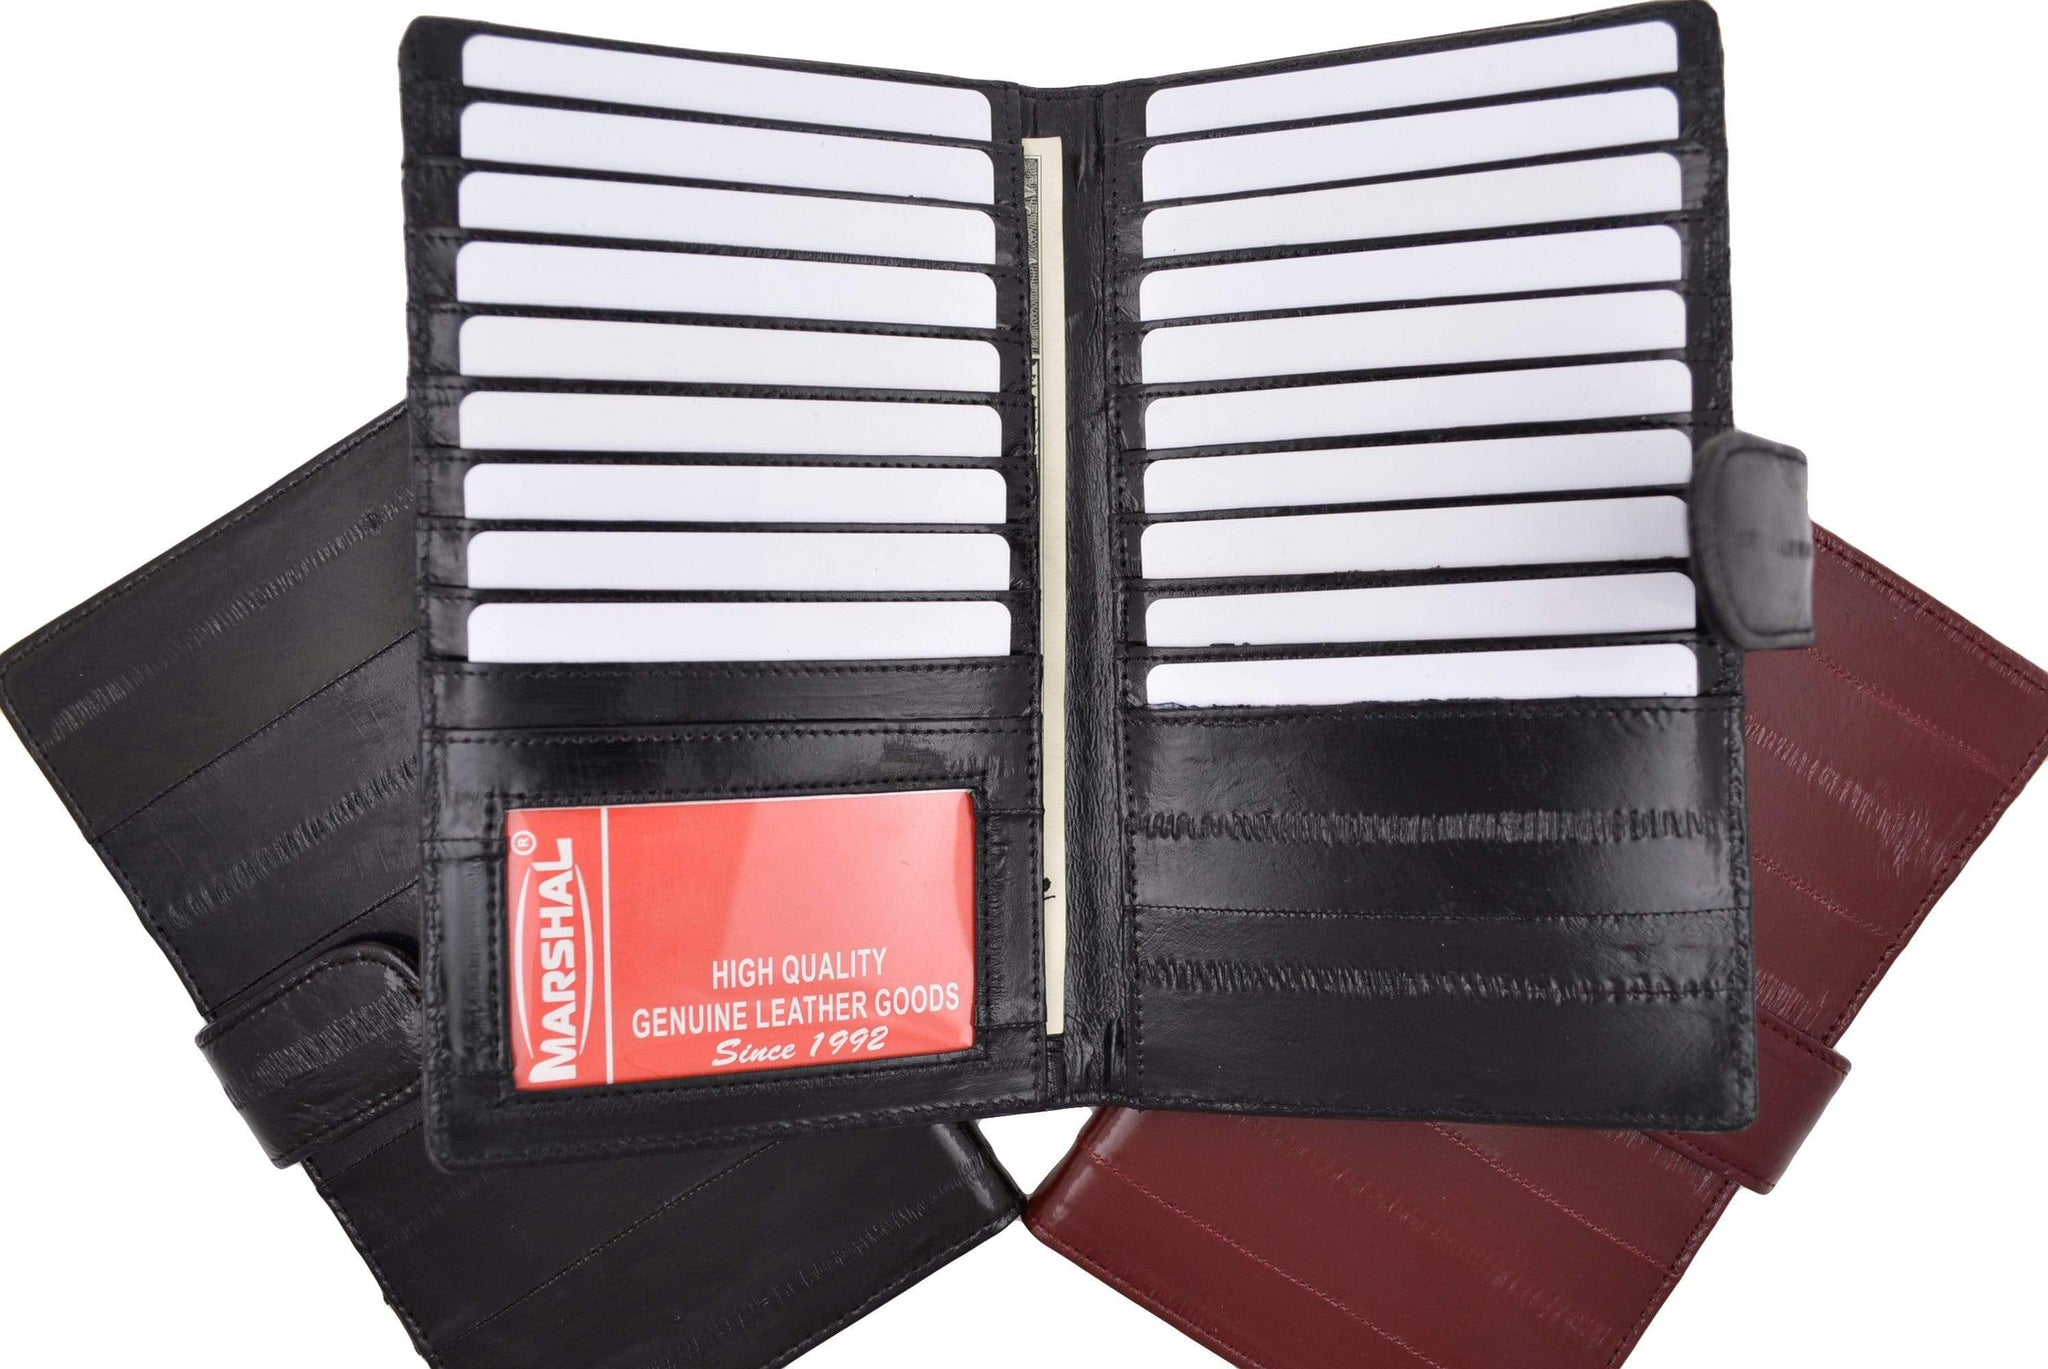 1 ID Window Genuine Leather Credit Card Holder Wallet 19 Card Slots